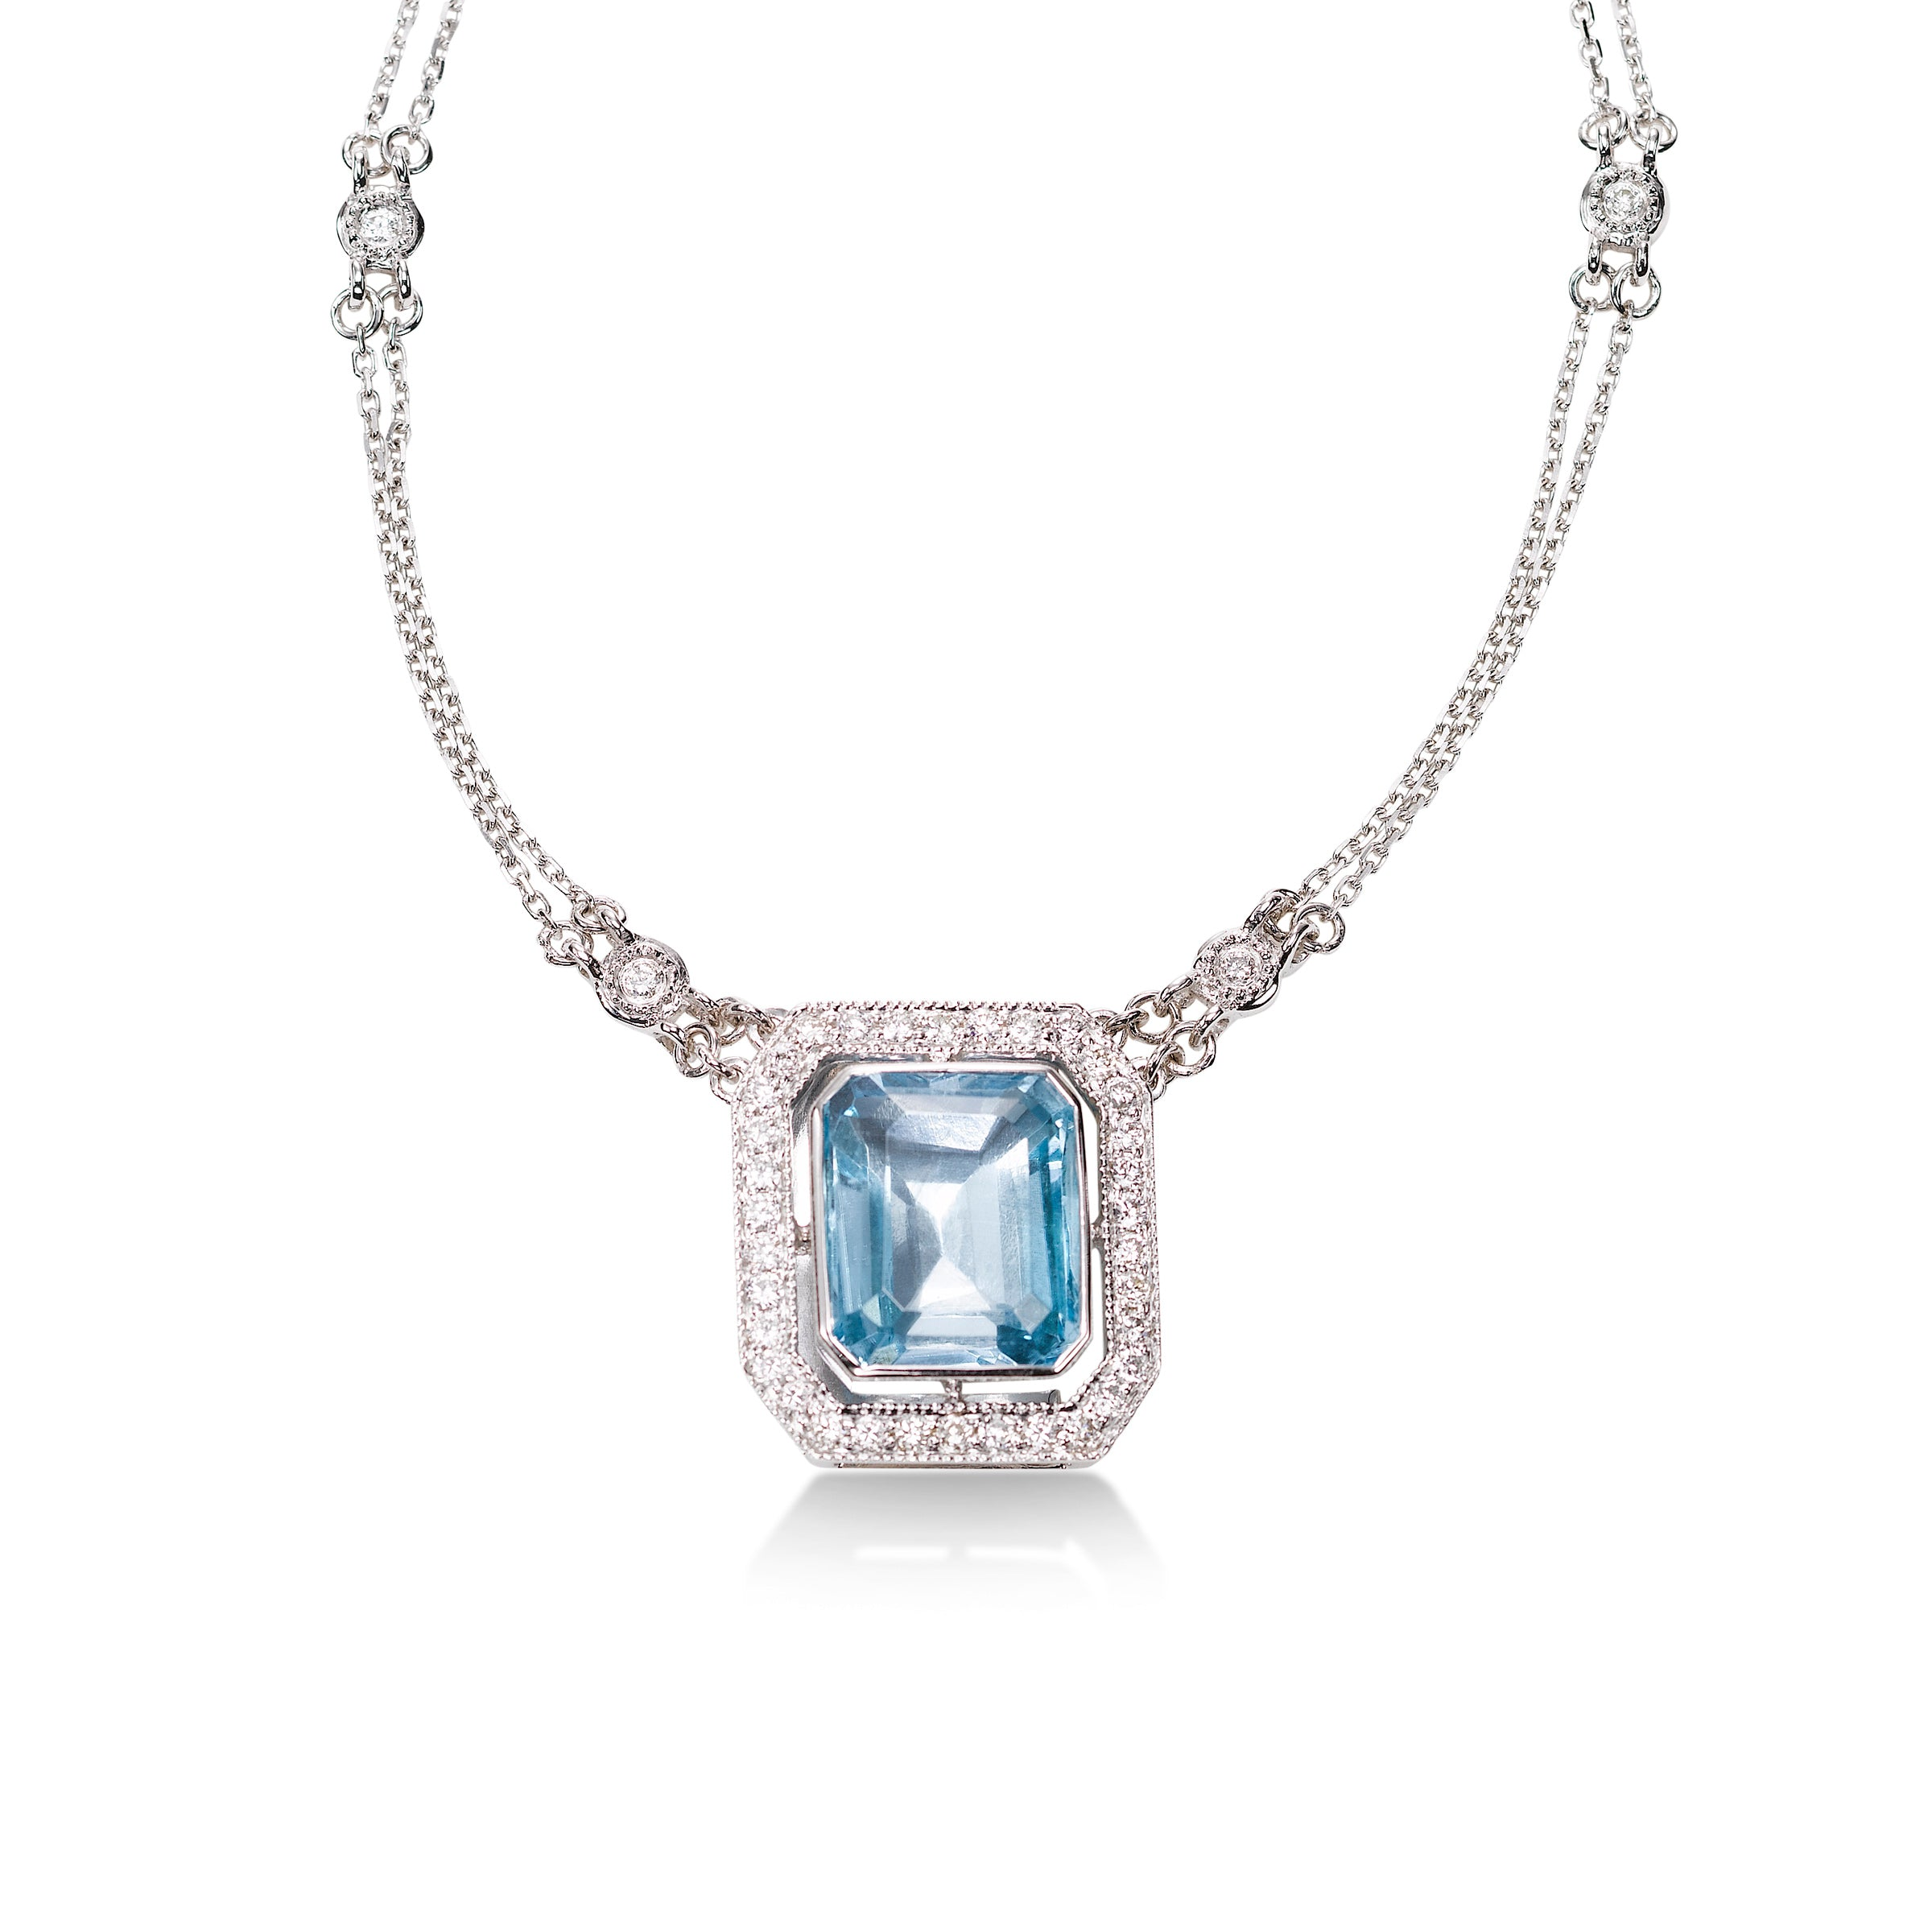 Emerald Cut Blue Topaz and Diamond Necklace, 14K White Gold